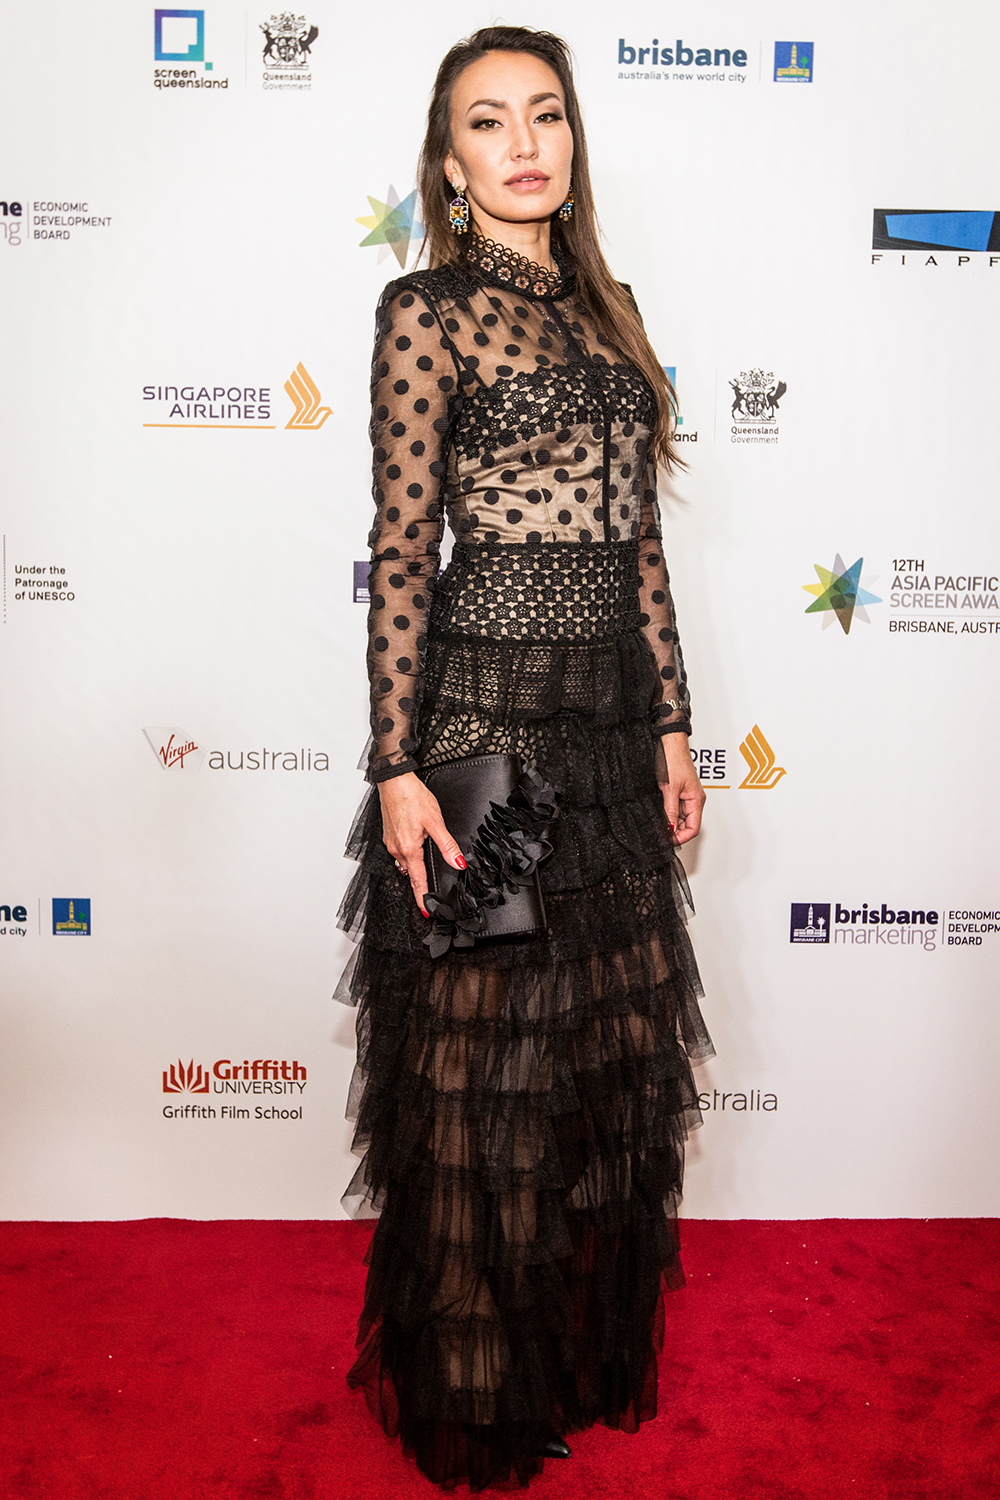 Alina is wearing a Bronx & Banco Black 'Isabella Gown' on the Red Carpet of the APSA which was held in Brisbane